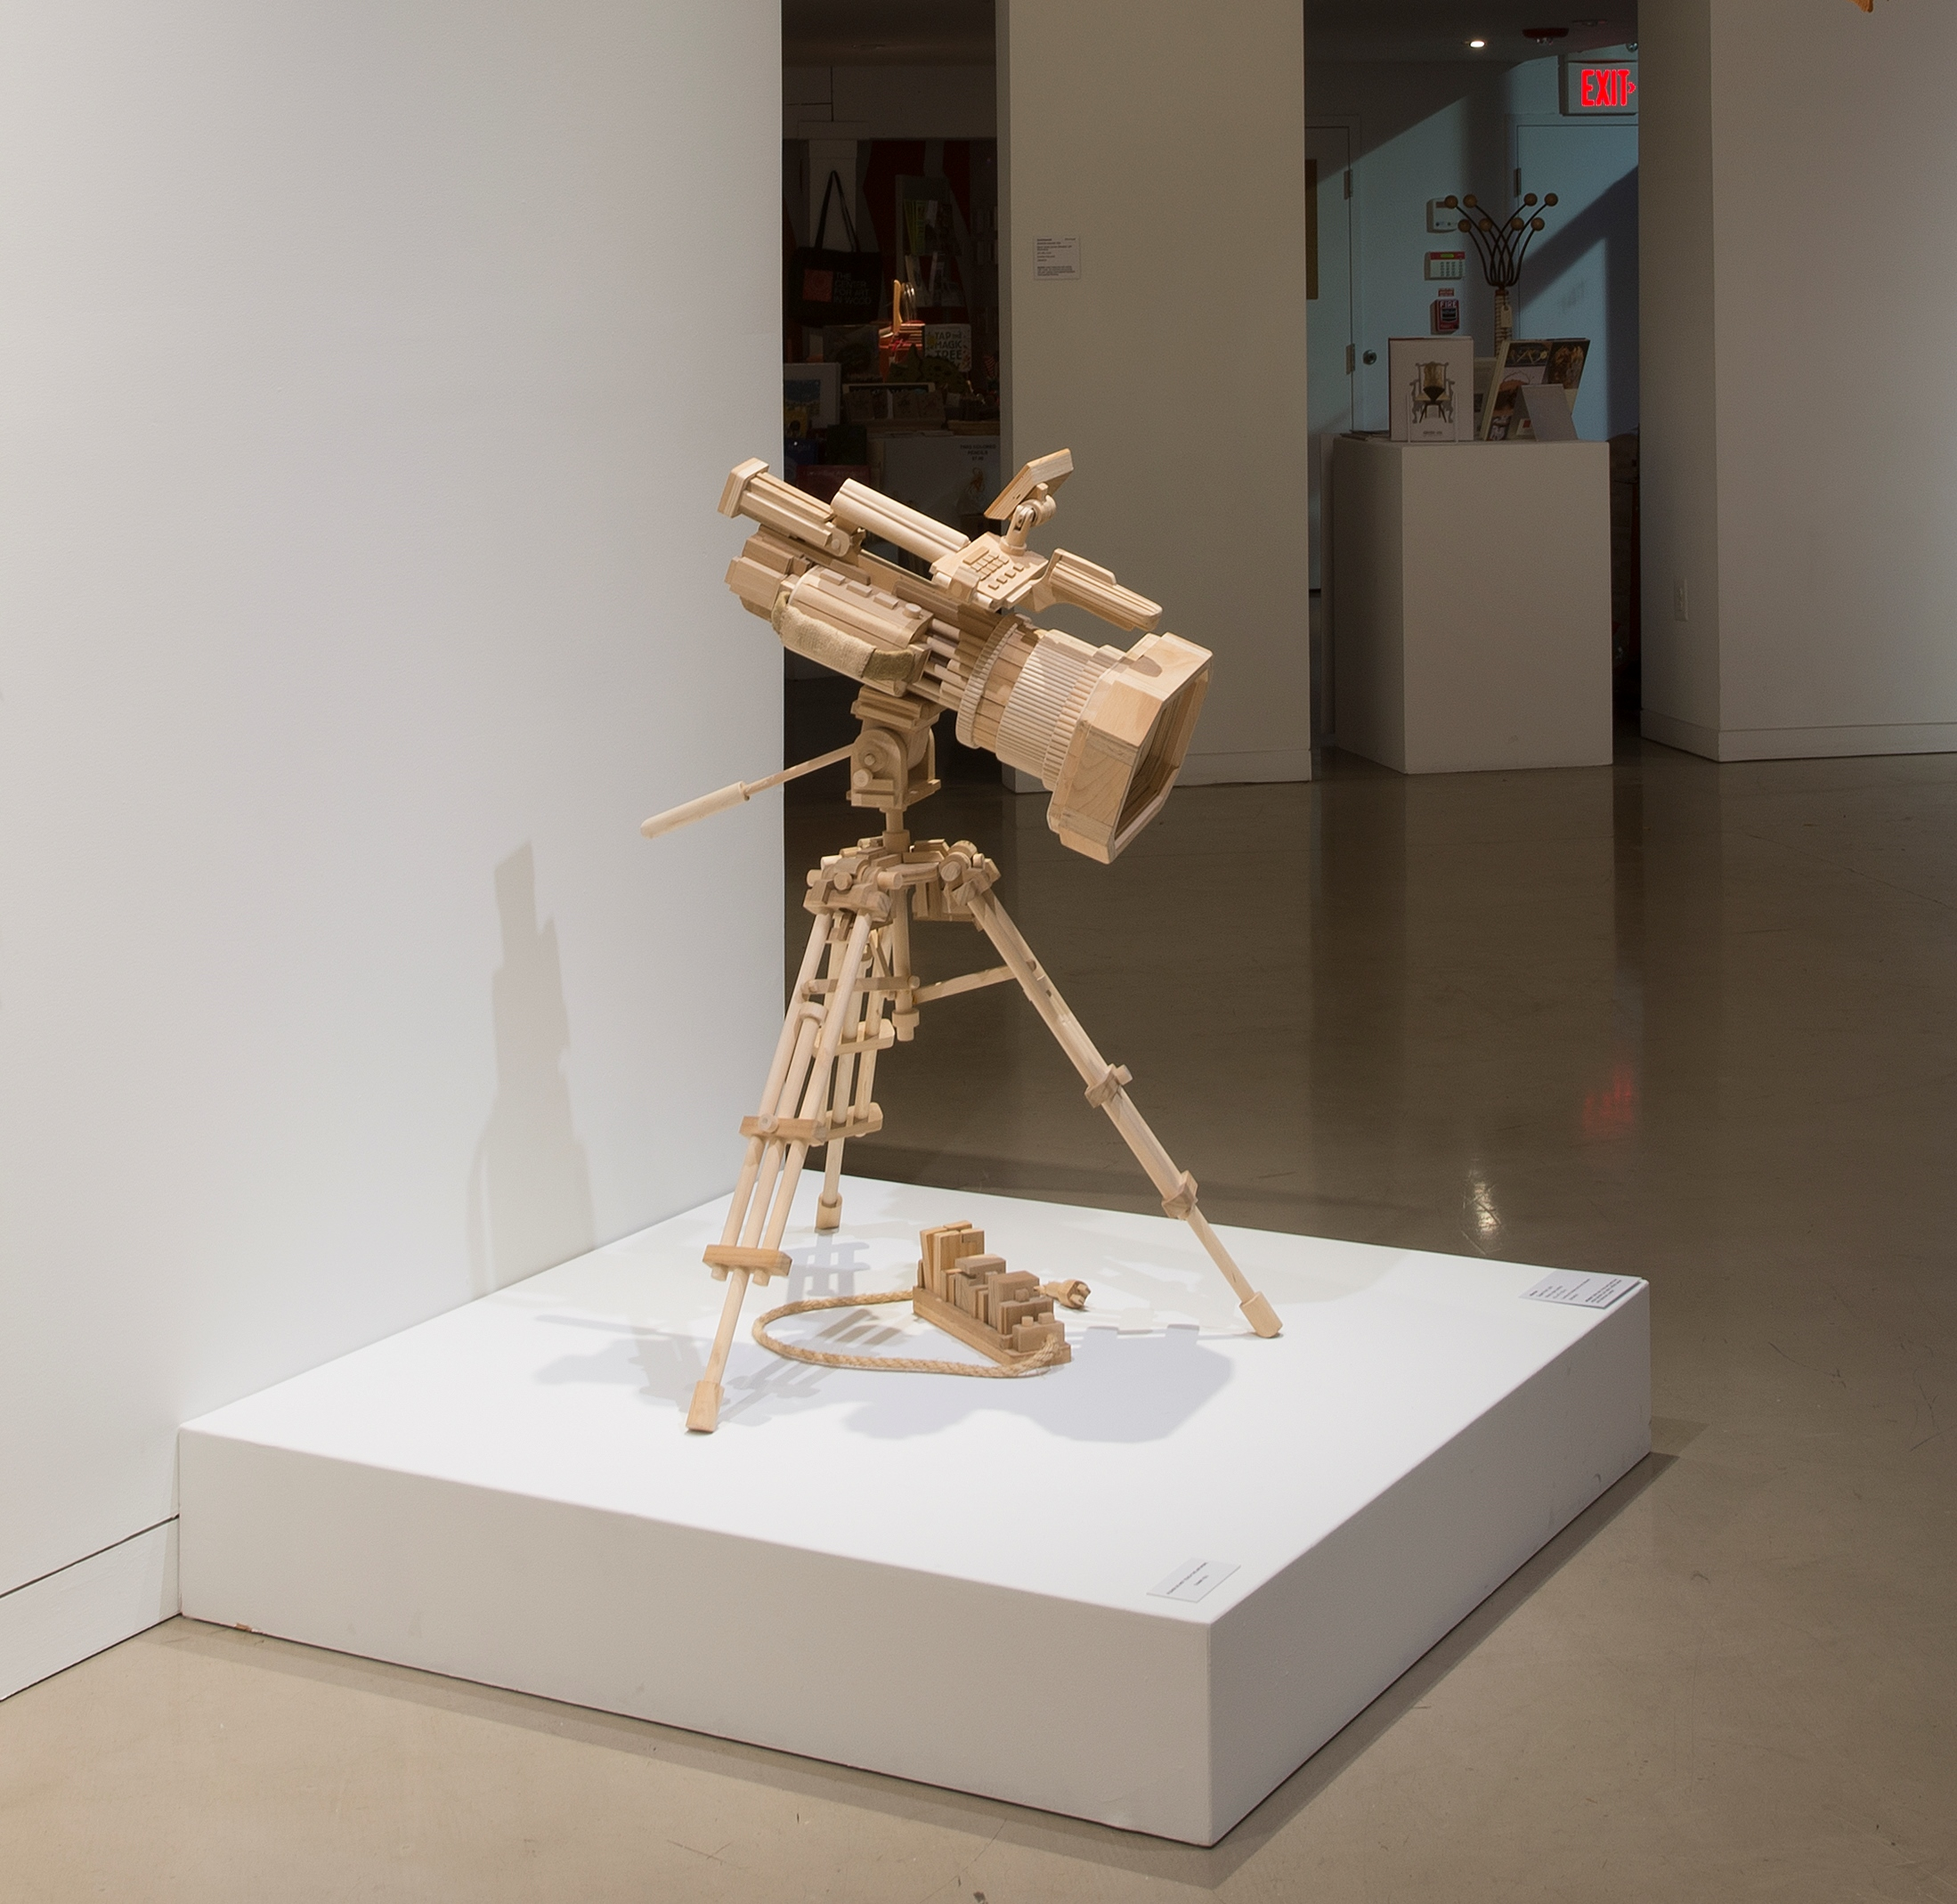 Mike Rea  , Super Porn , 2011.Wood, rope, burlap.42 x 47 x 35 in.Courtesy of Andrew and Amy Falkowski.2016.MR.01. Photo: John Carlano   METHOD: Table saw, chop saw, band saw, angle grander, pin nailer, orbital sander and stationary sander